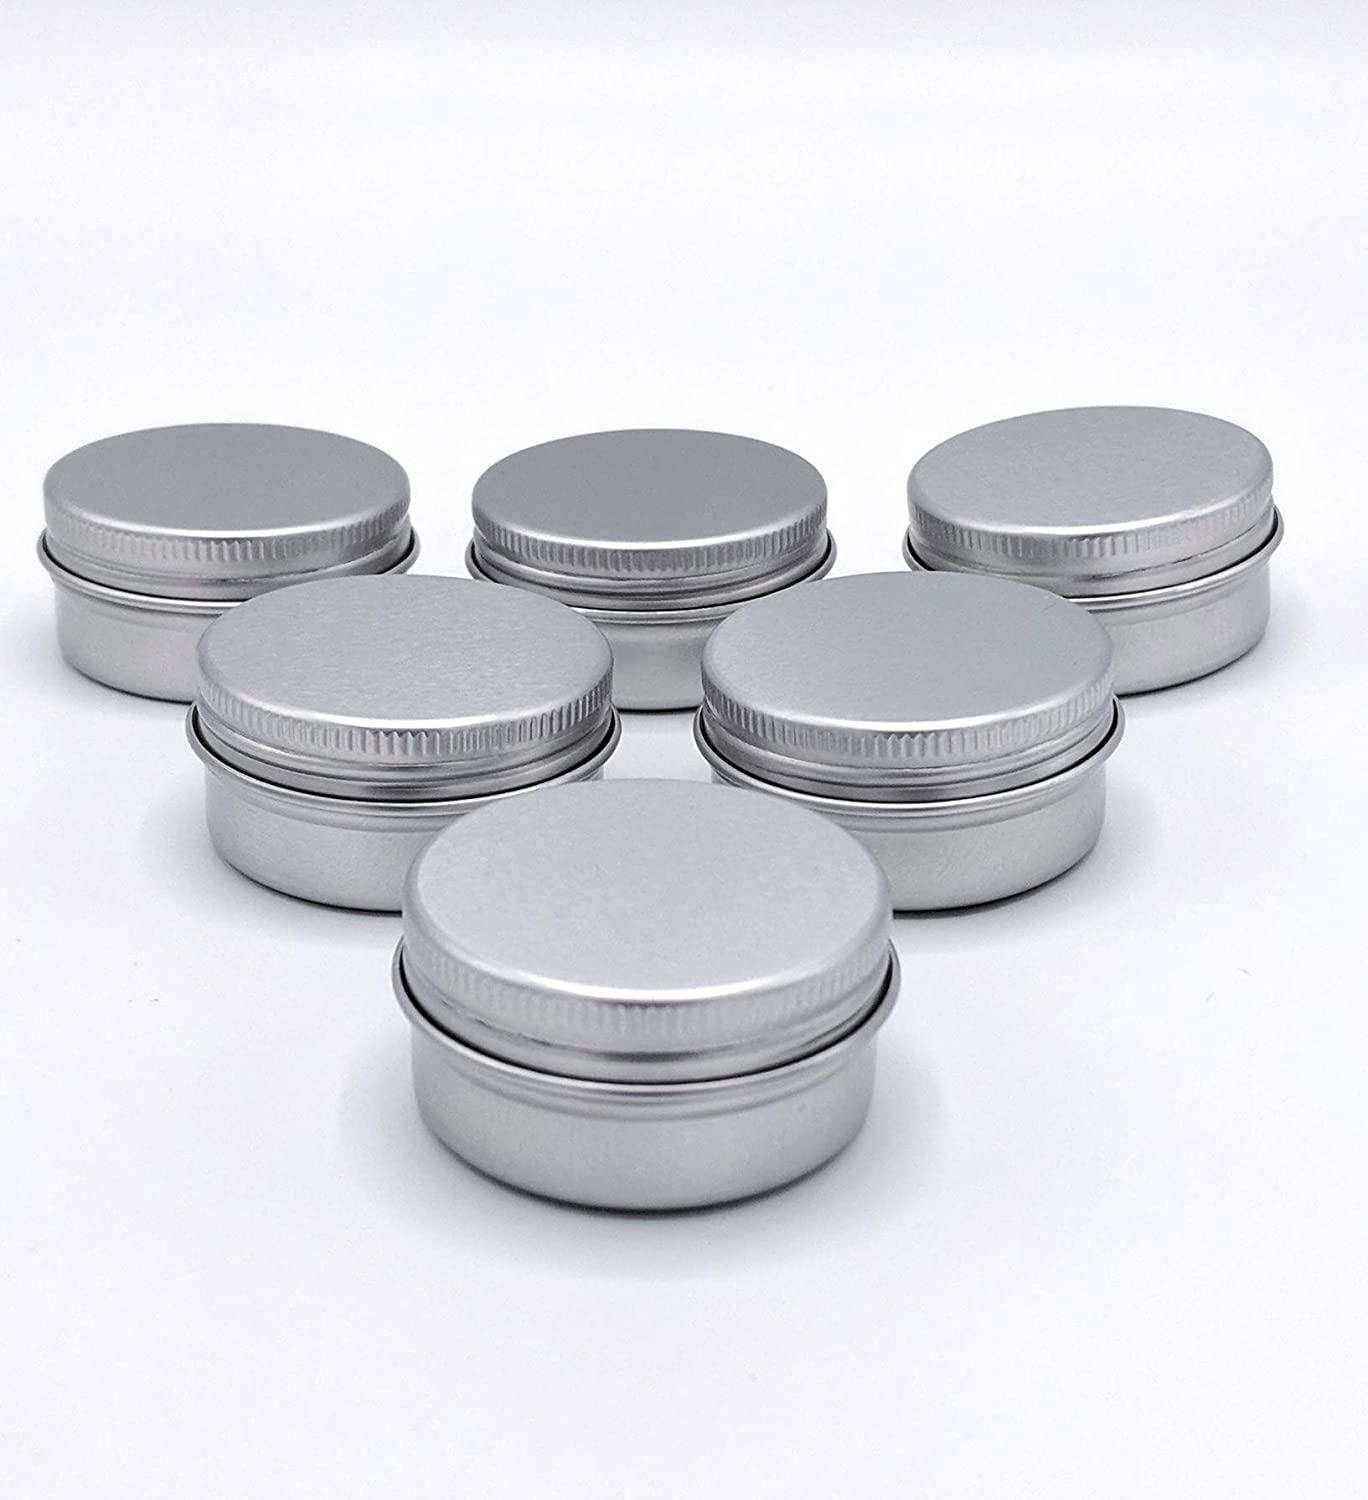 Empty Screw Top Round Tin Containers for Lip Balm, Crafts, Cosmetic, Candles, Storage Kit 1 2 Oz 35